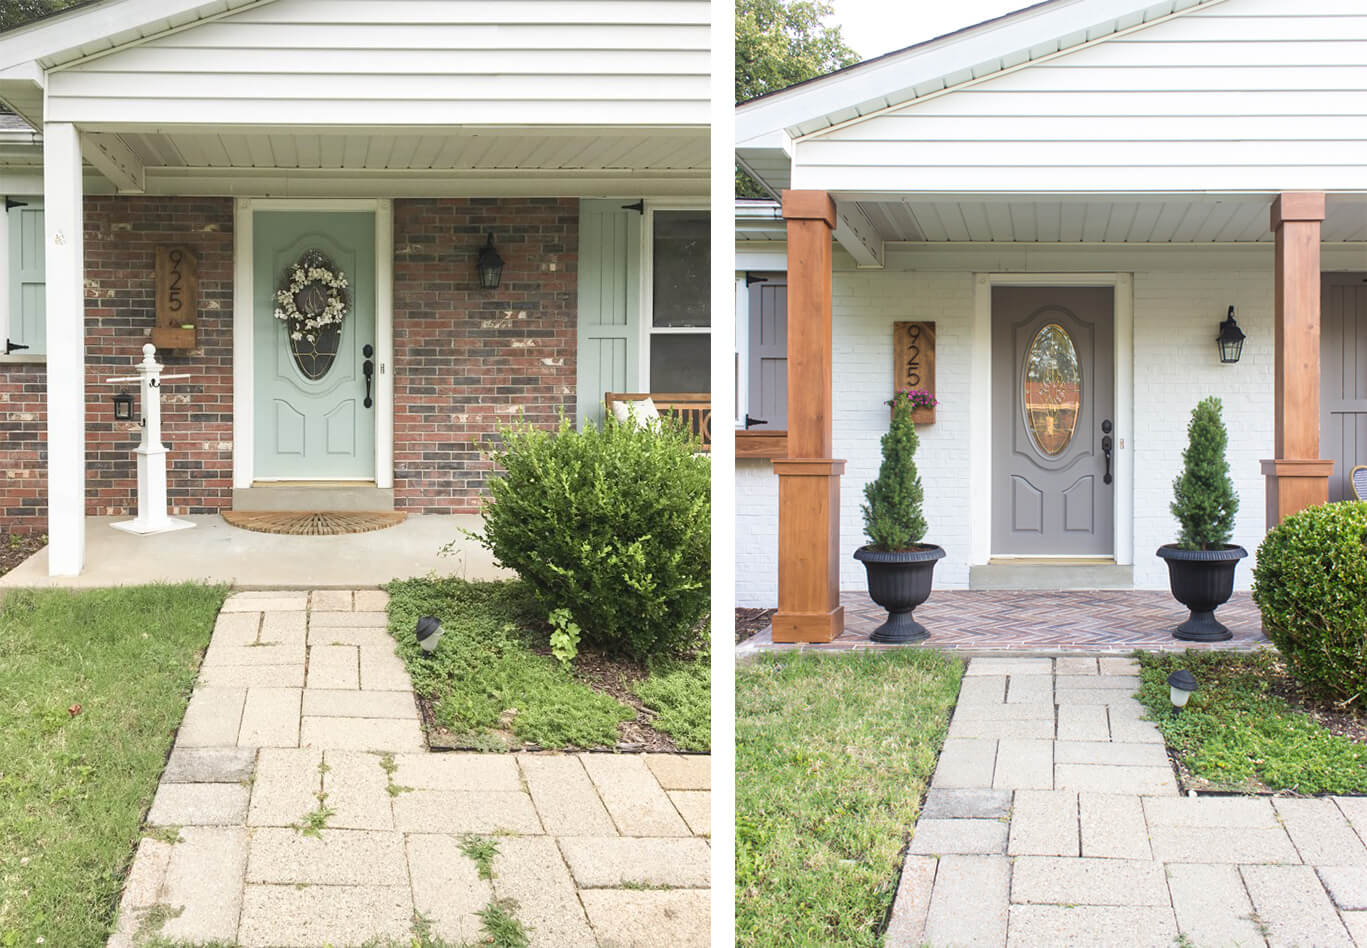 Total Porch Makeover from Columns to Colors